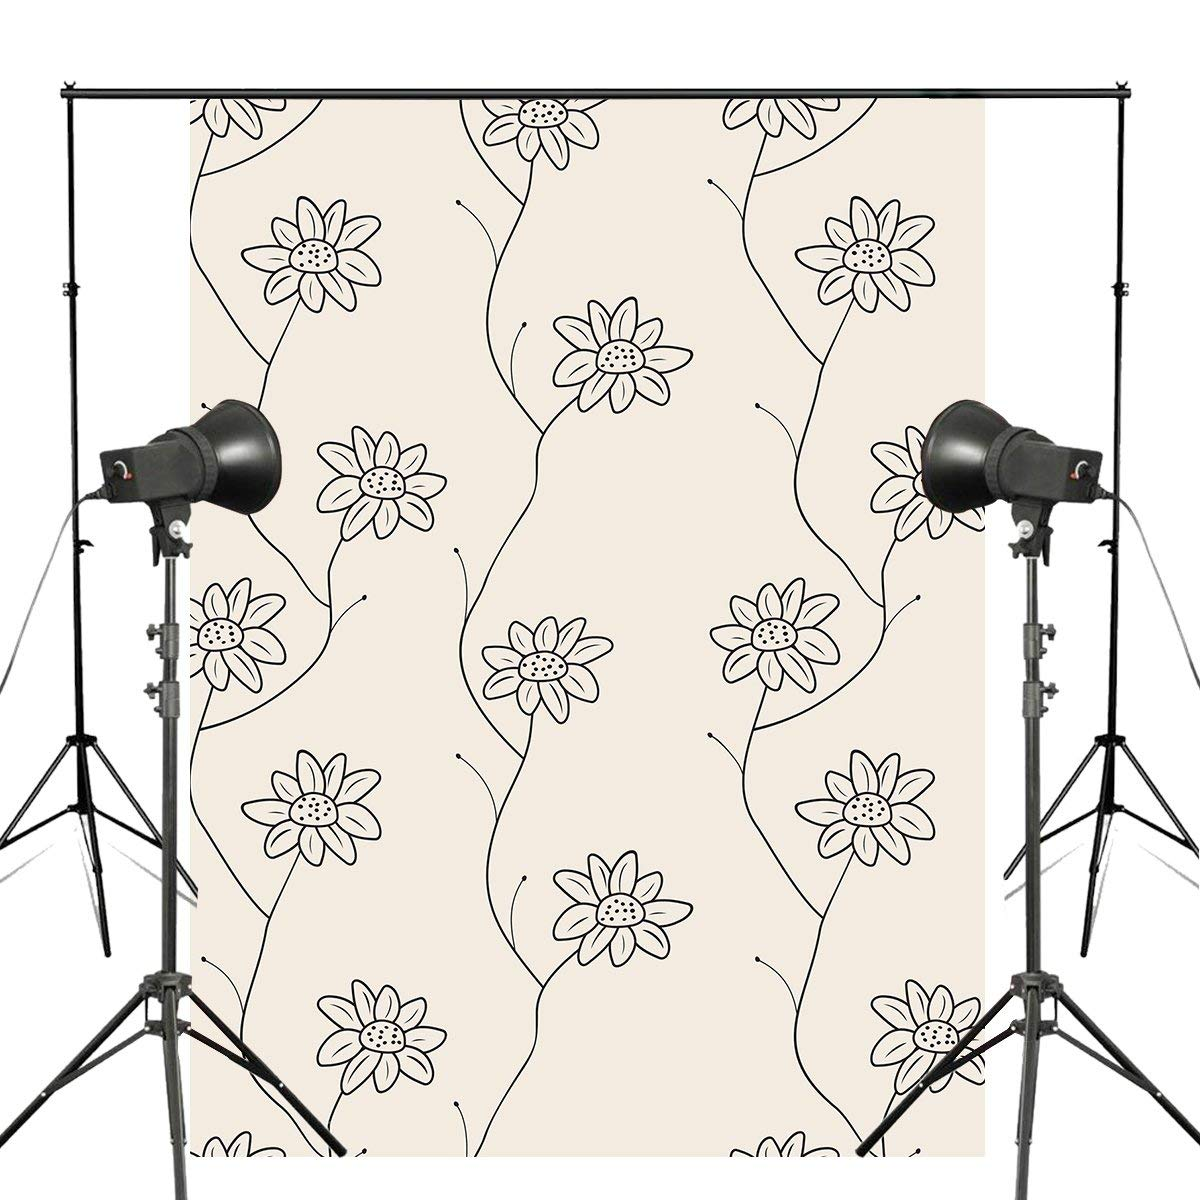 5x7ft Delicate Floral Photography Backdrop Seamless Pattern Background Plain Style Photo Studio Wall